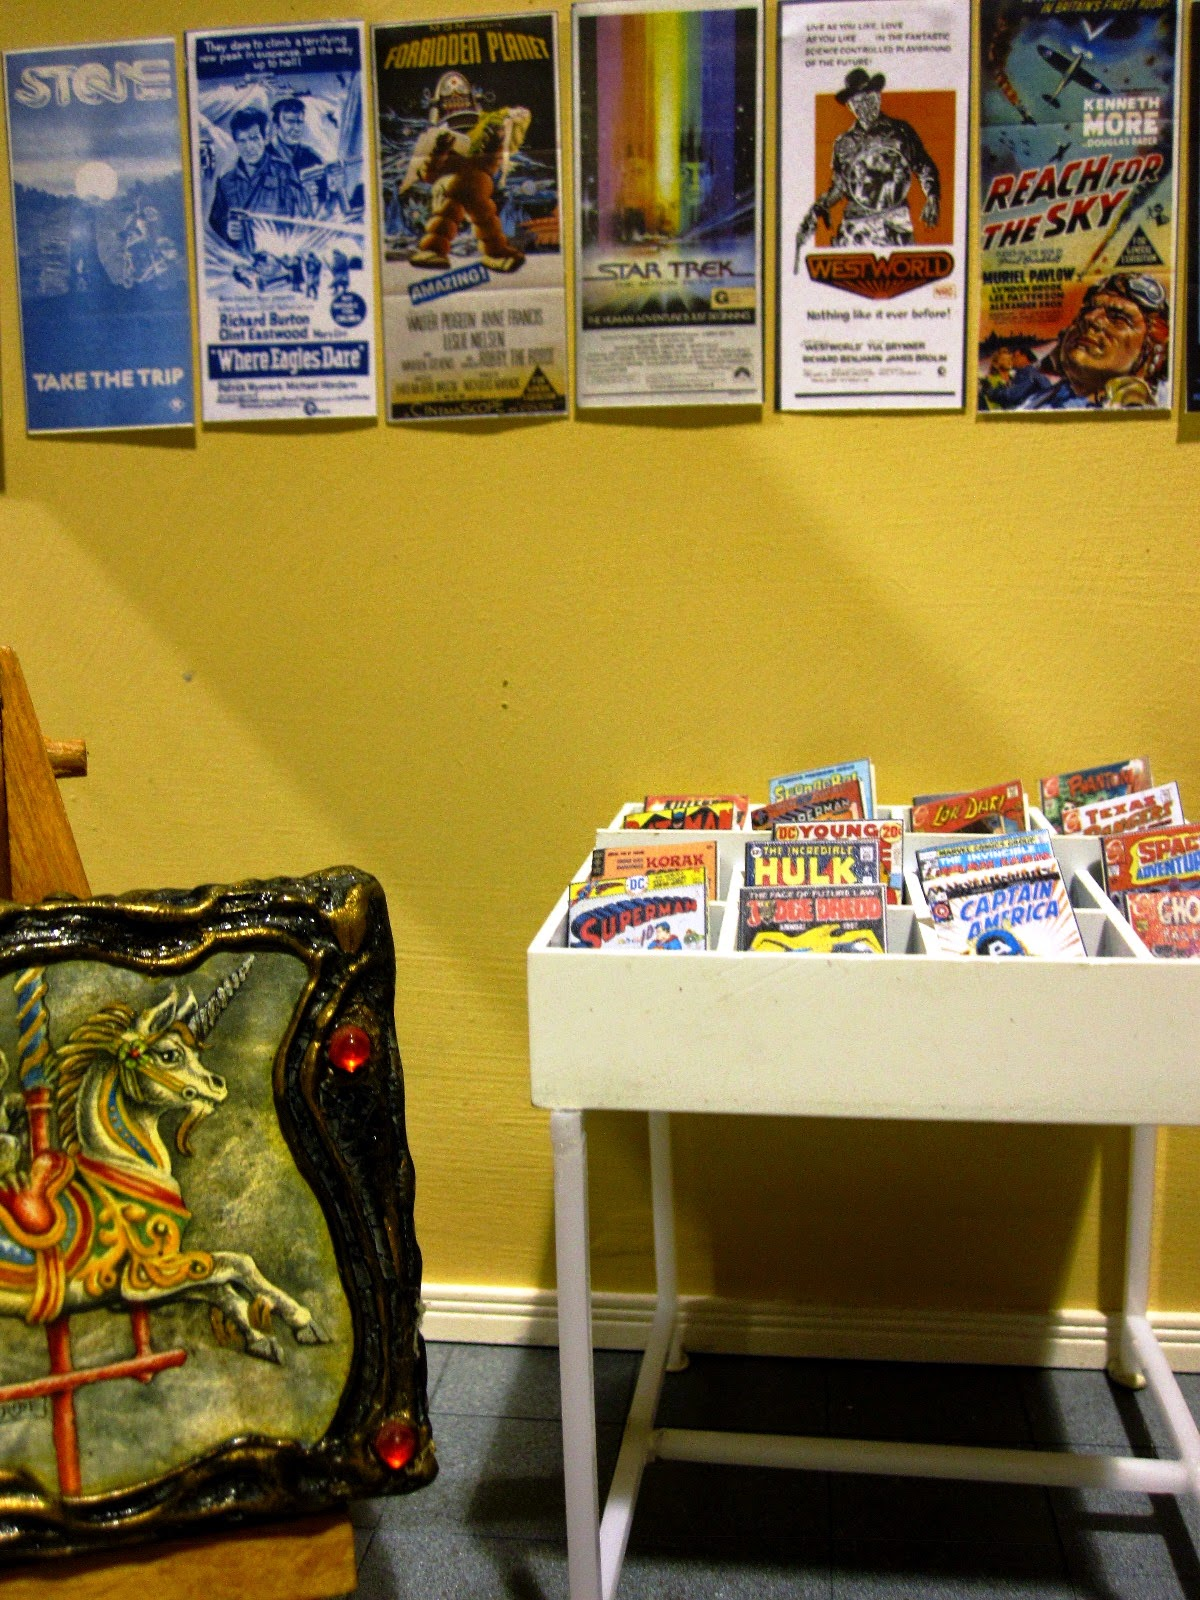 Modern miniature comic book store, interior view showing a rack of comics, a wall of posters and a fantasy art piece on an easel.